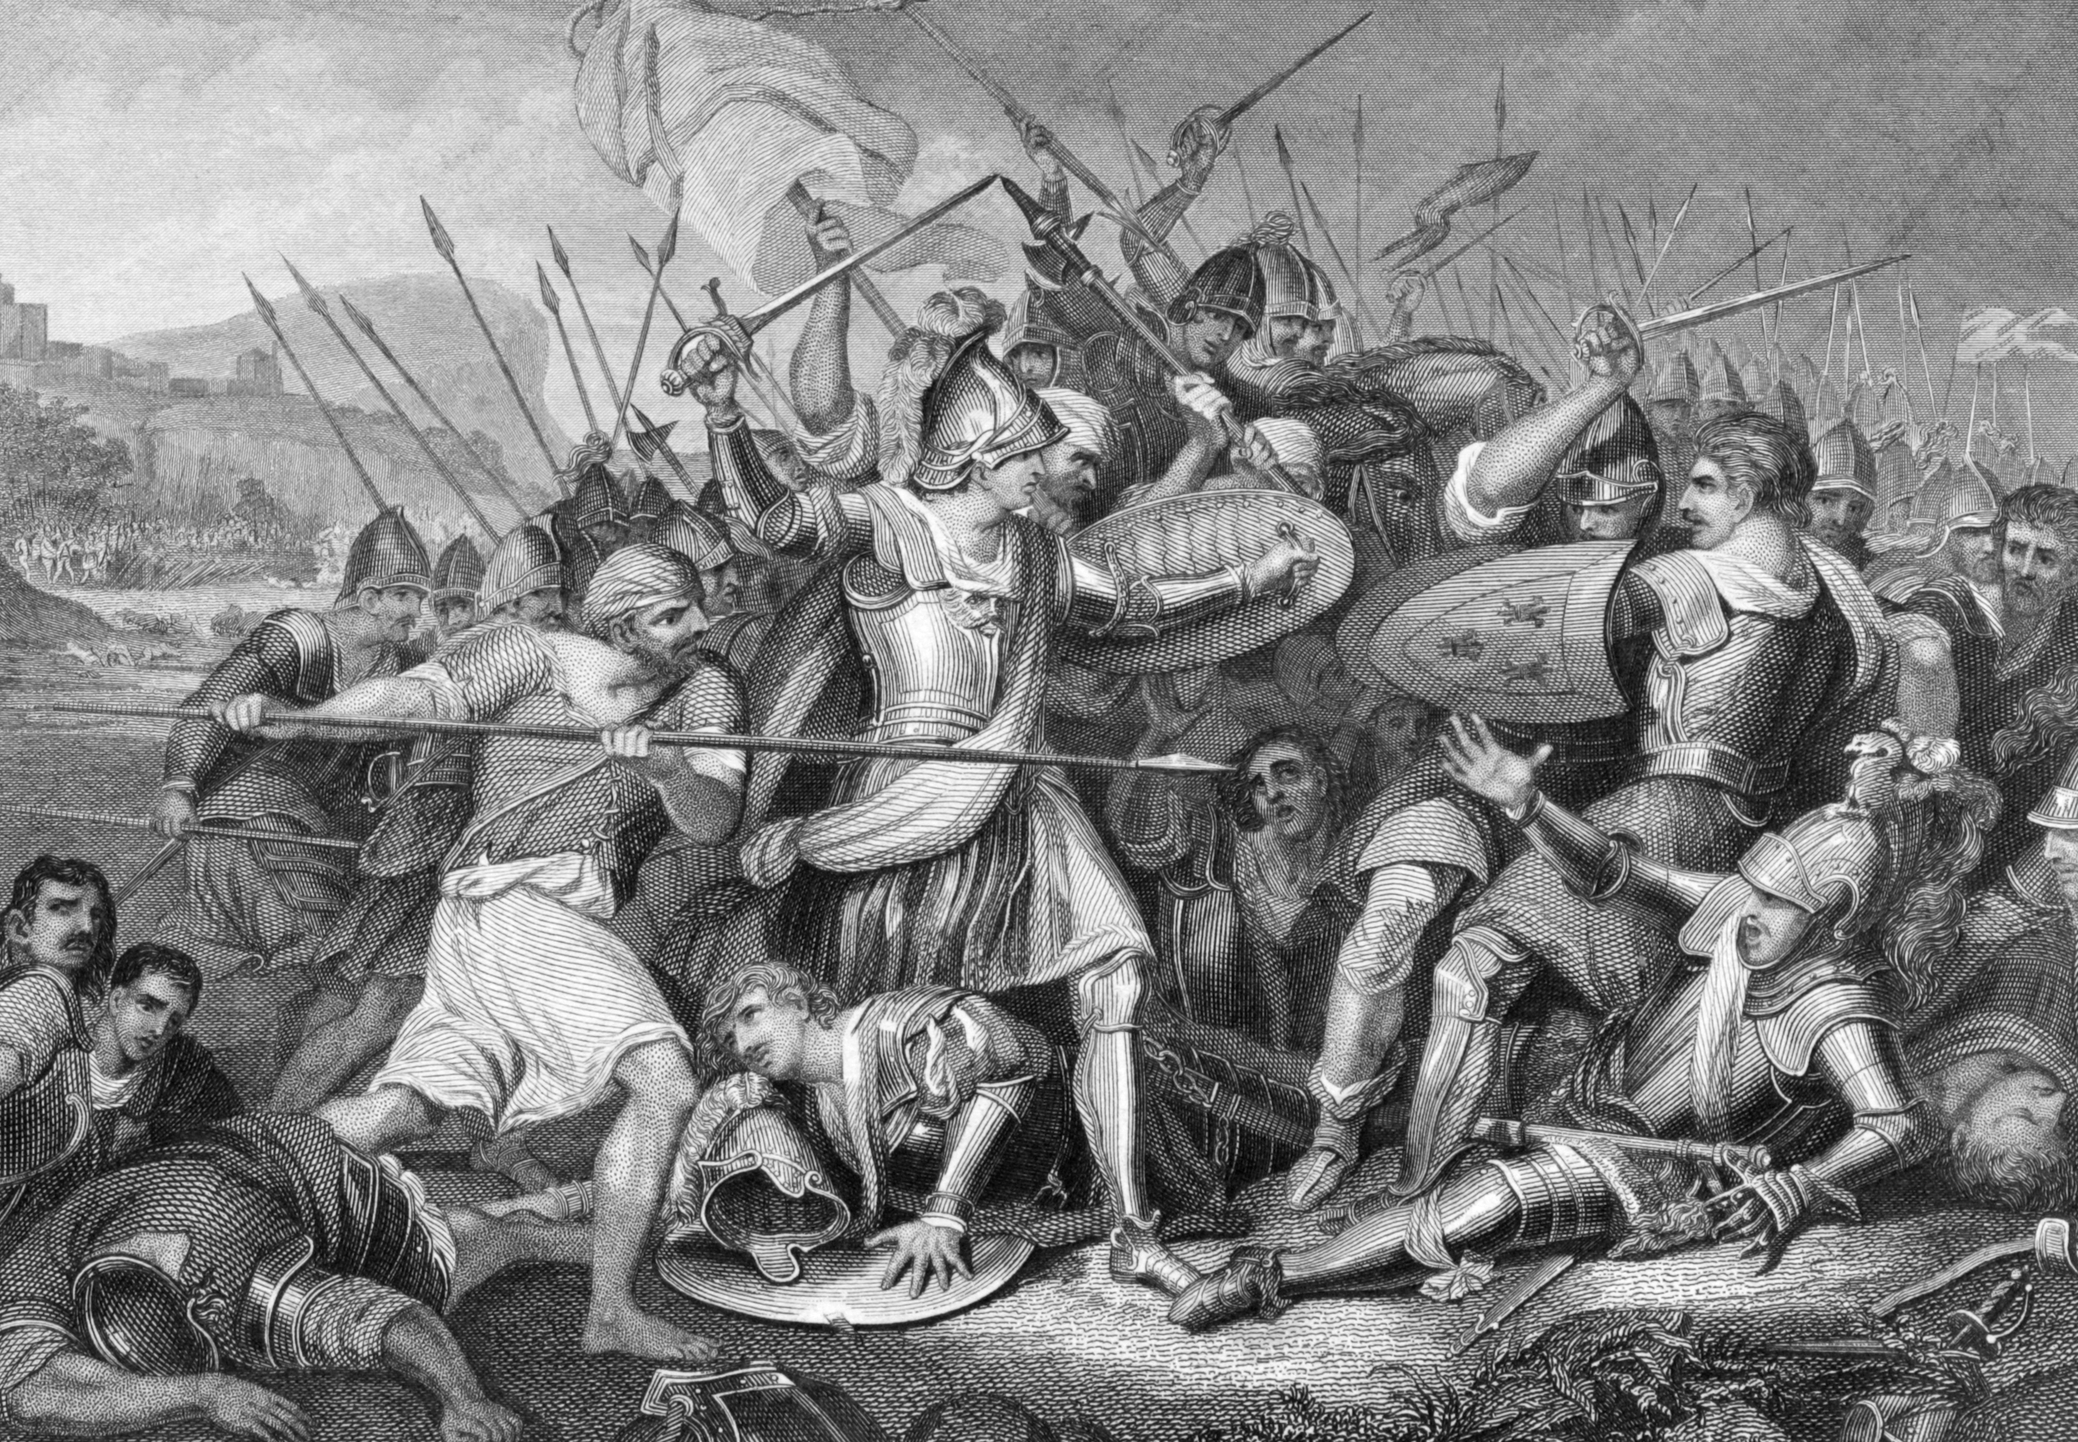 Lessons learned from Battle of Agincourt for business leadership.